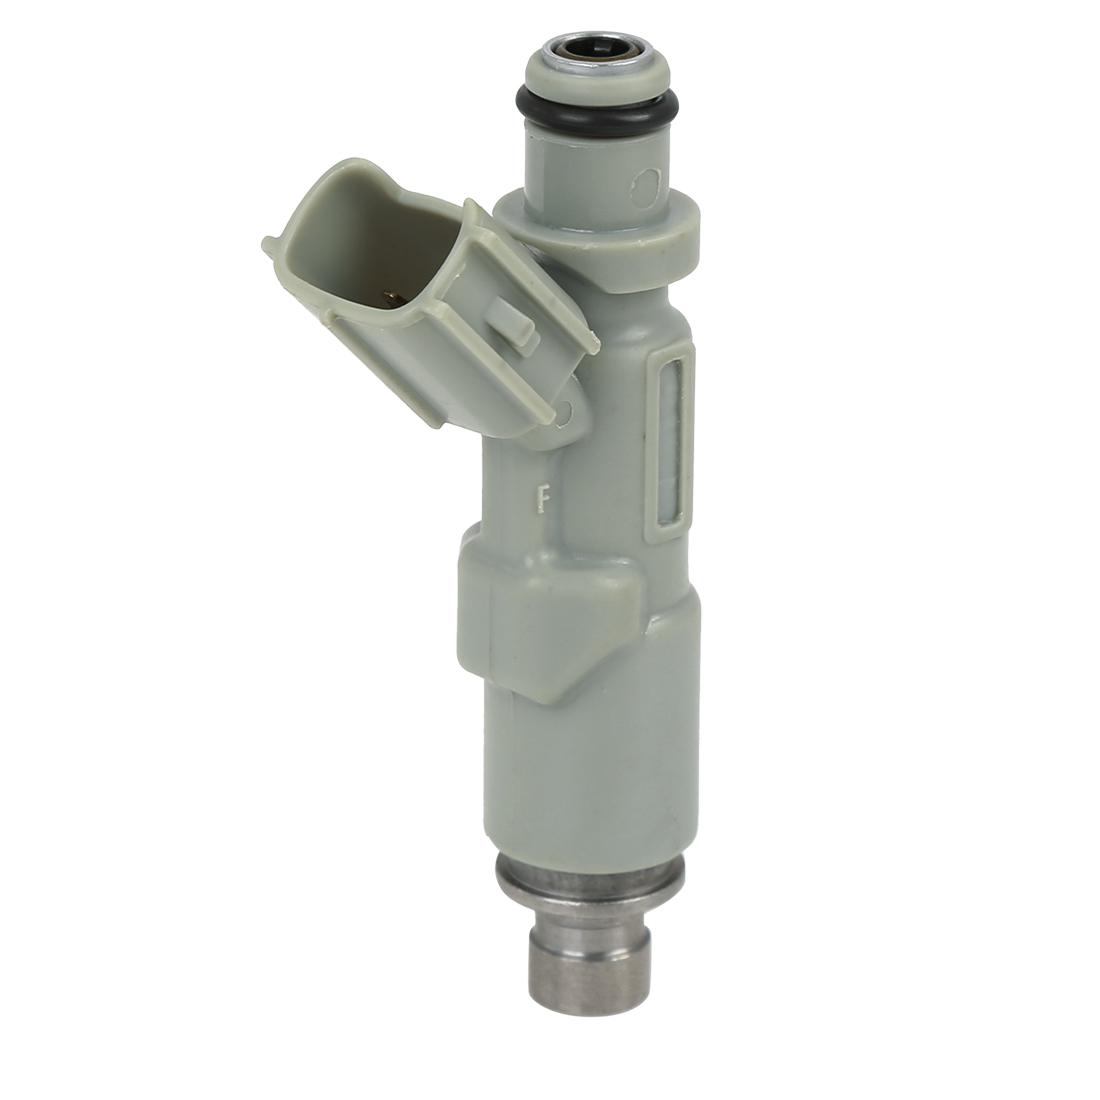 Car Flow Matched Fuel Injector Nozzle 23250-97204 23209-97204 for Daihatsu Hijet